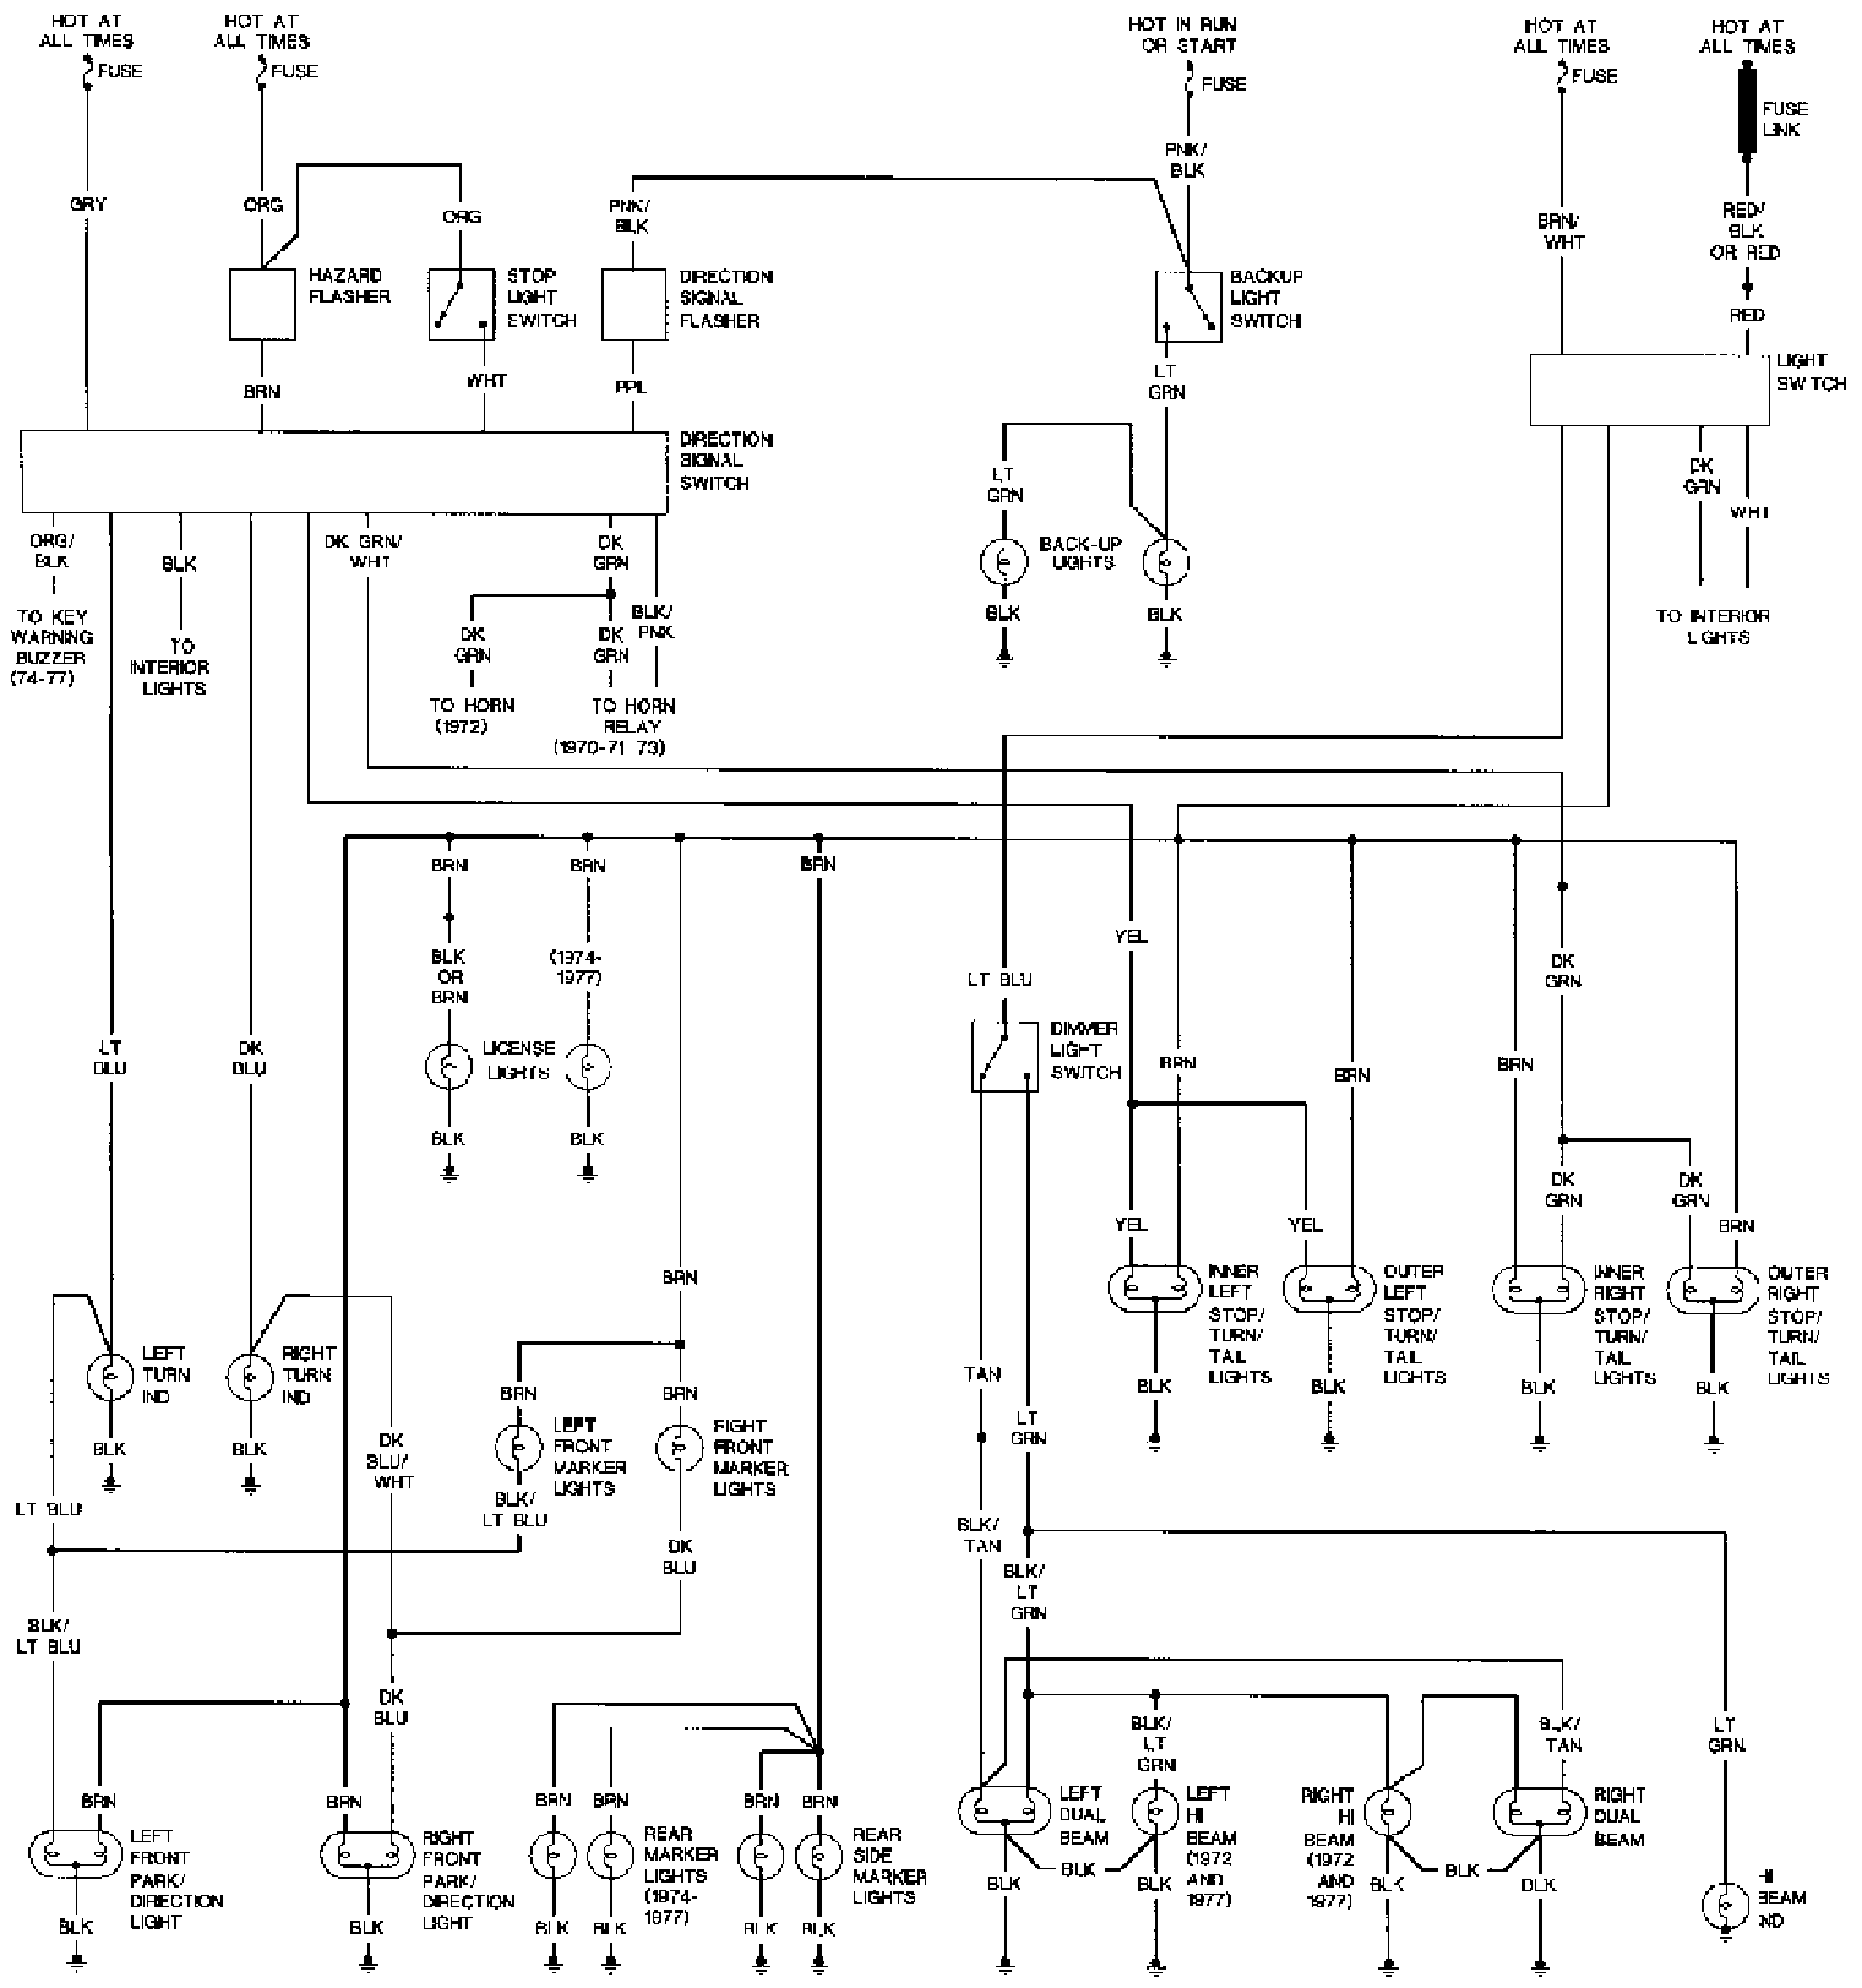 Diagram In Pictures Database 1991 Firebird Wiring Diagram Just Download Or Read Wiring Diagram Annie Naulleau Kripke Models Onyxum Com